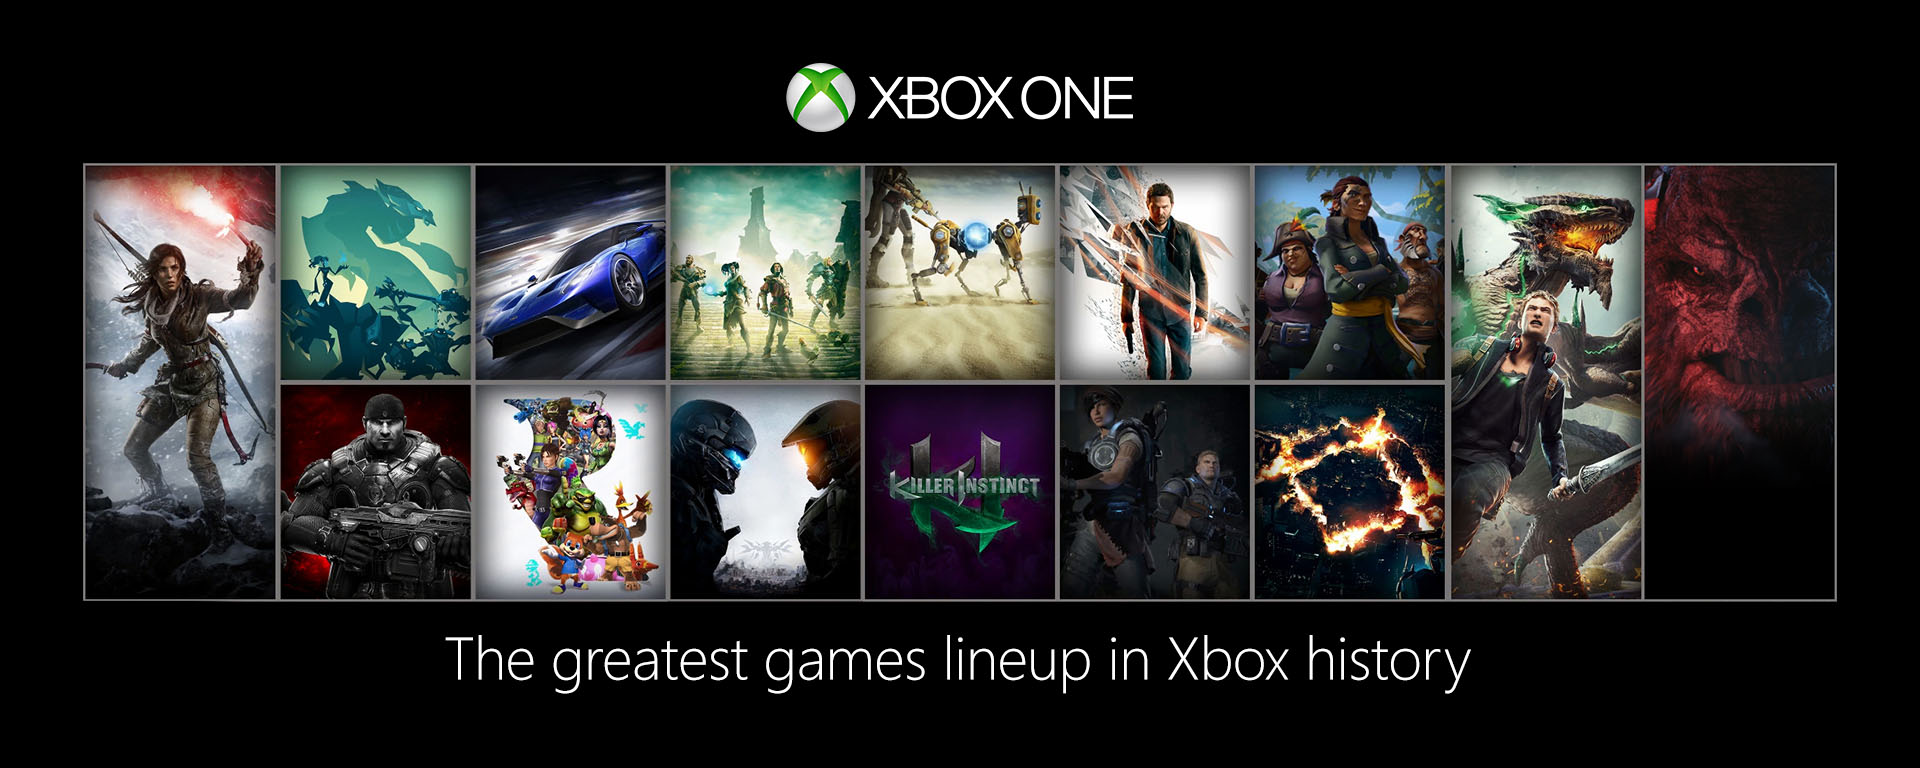 New Xbox One Indie Games : Xbox one comeback in holiday here s why